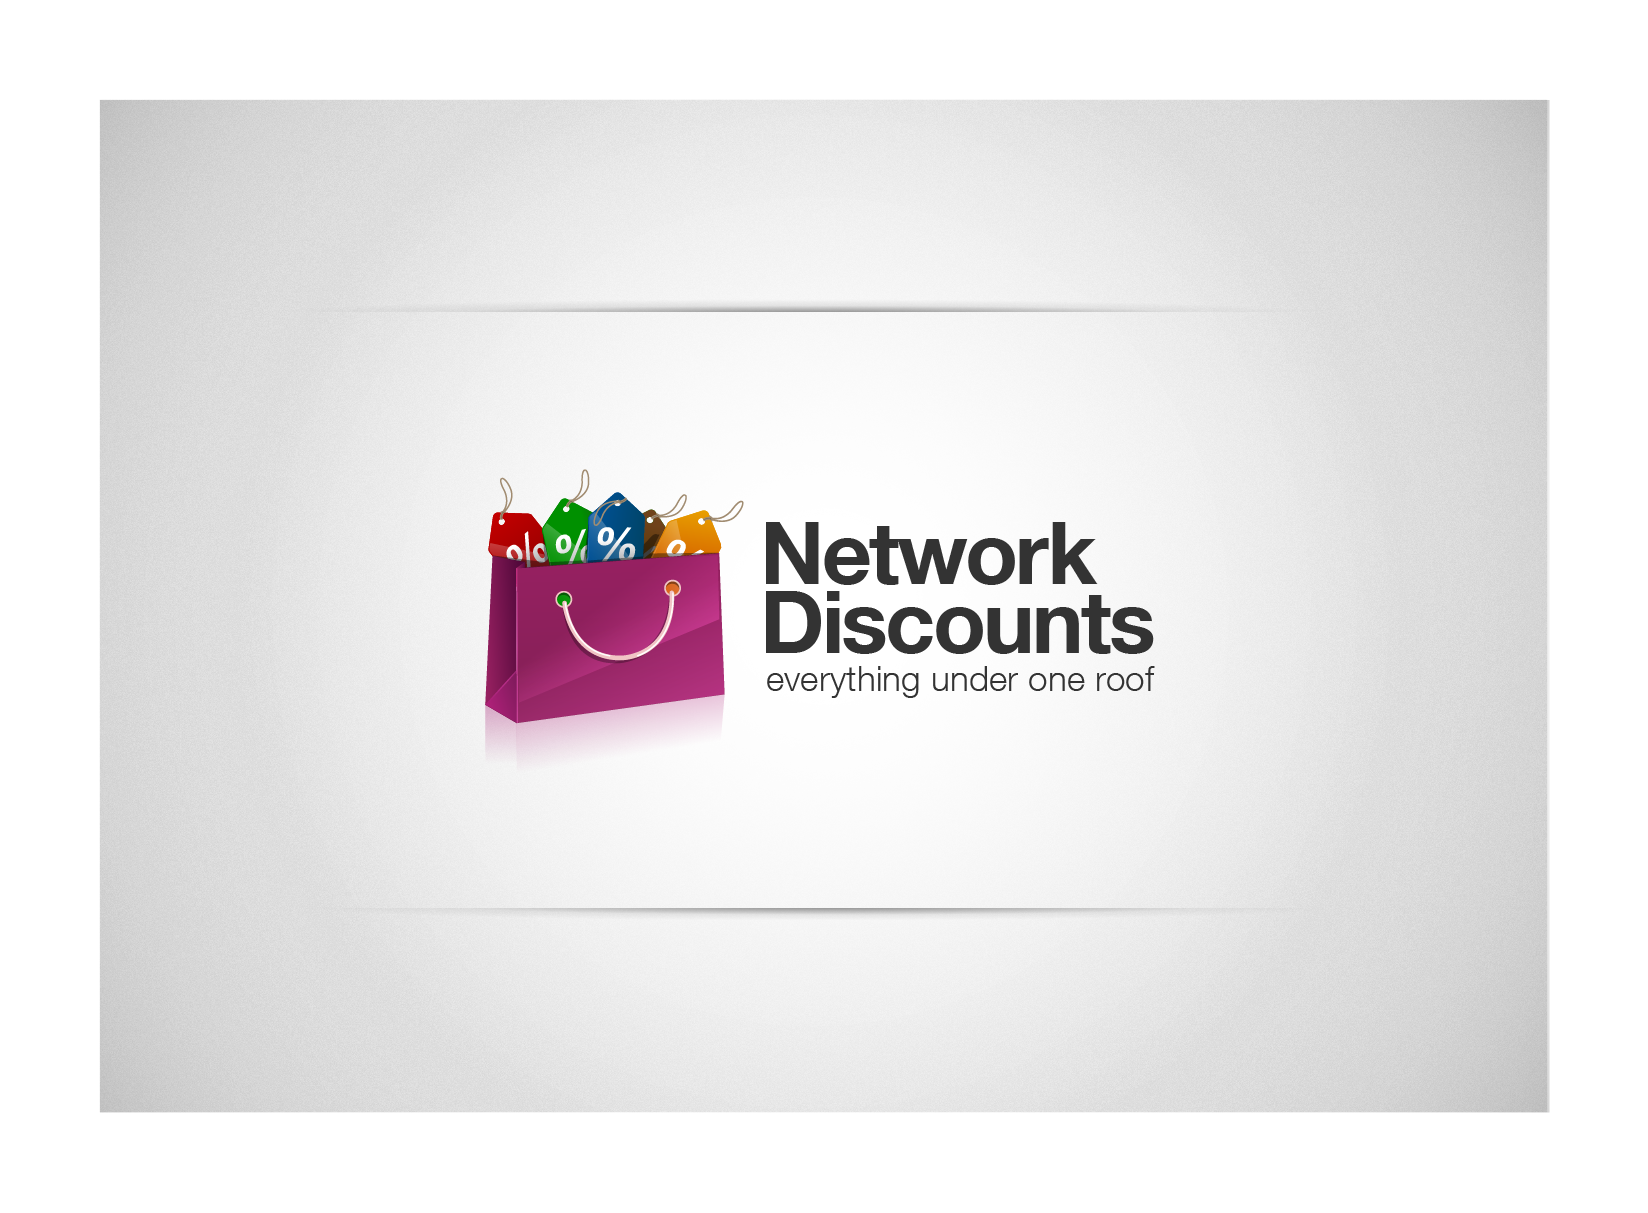 Help Network Discounts with a new logo